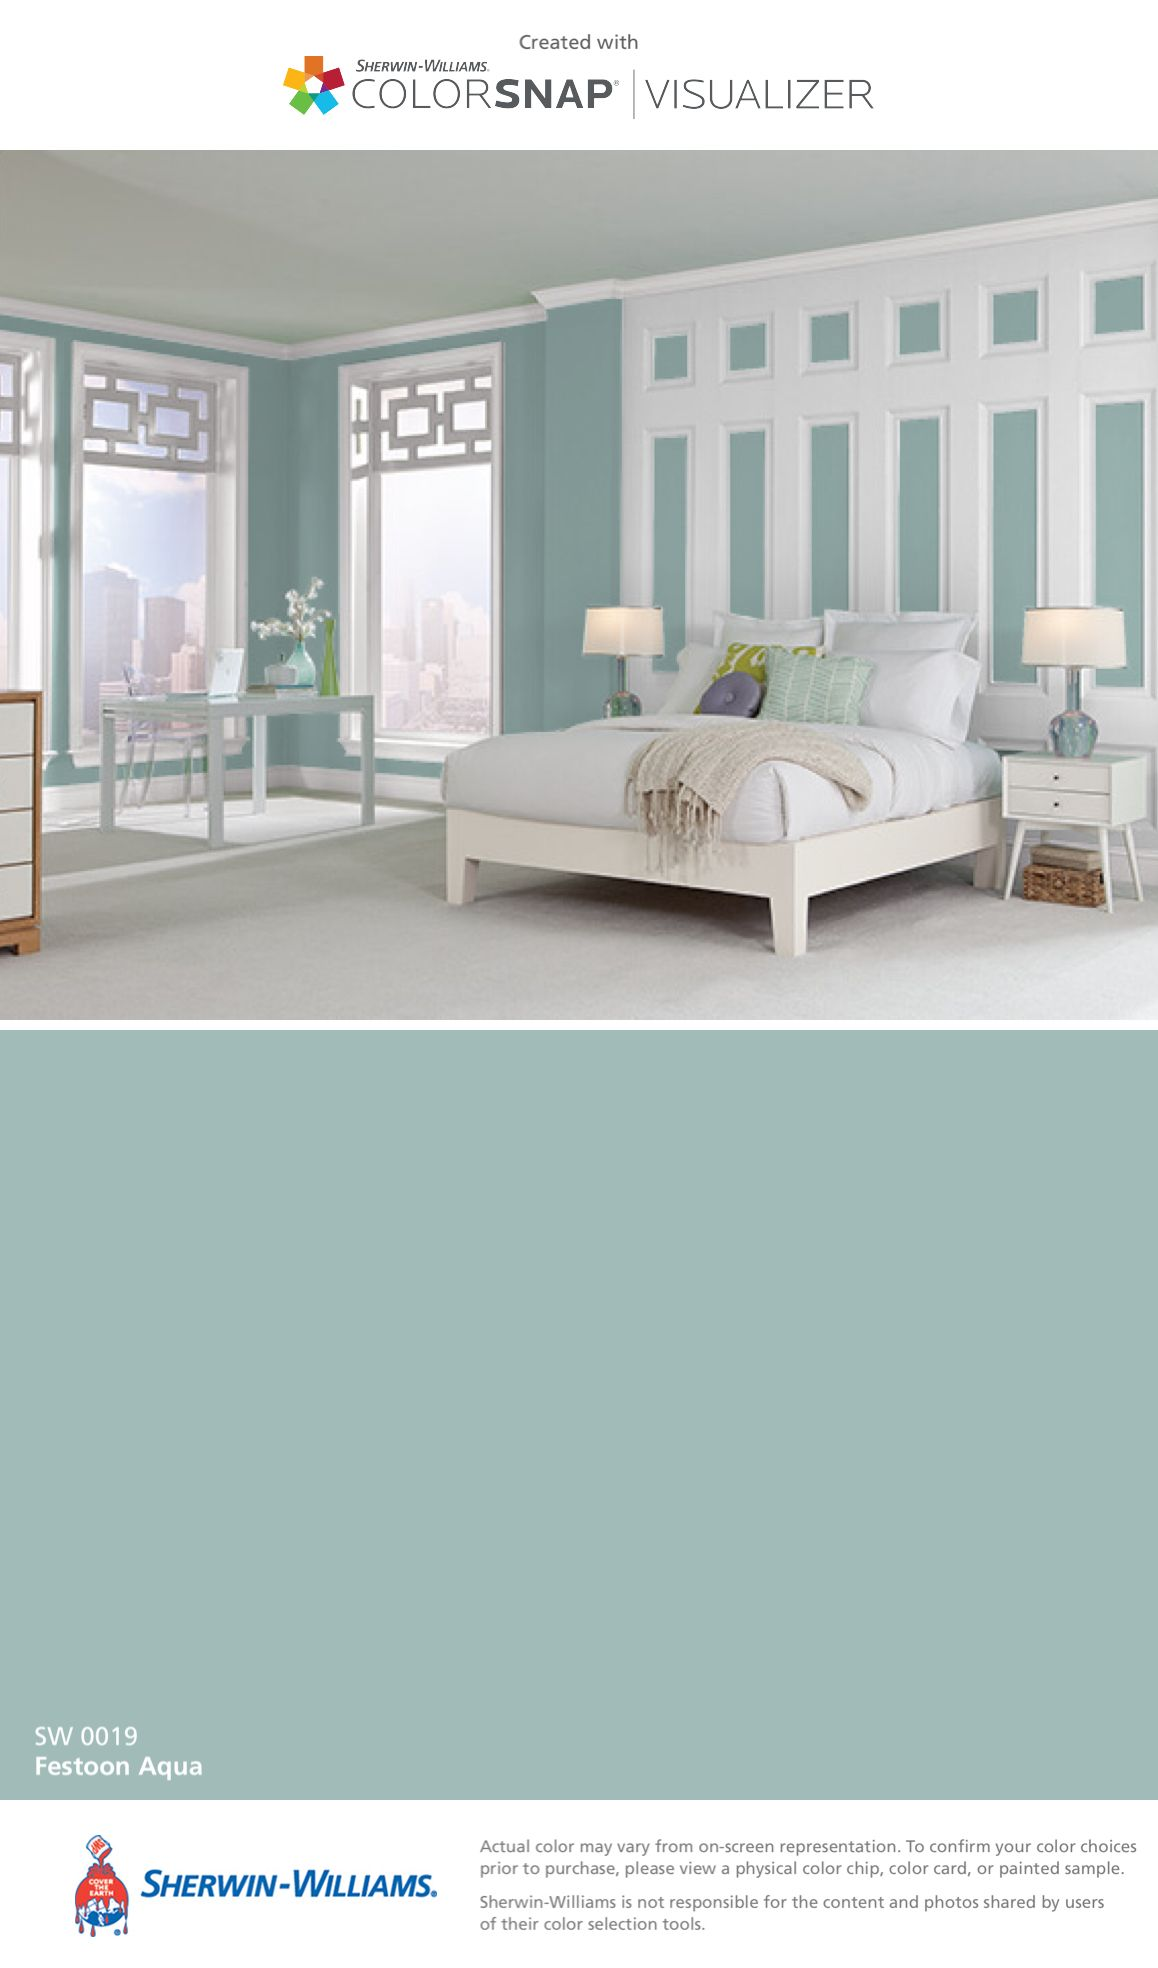 I Found This Color With Colorsnap Visualizer For Iphone By Sherwin Williams Festoon Aqua Sw 0019